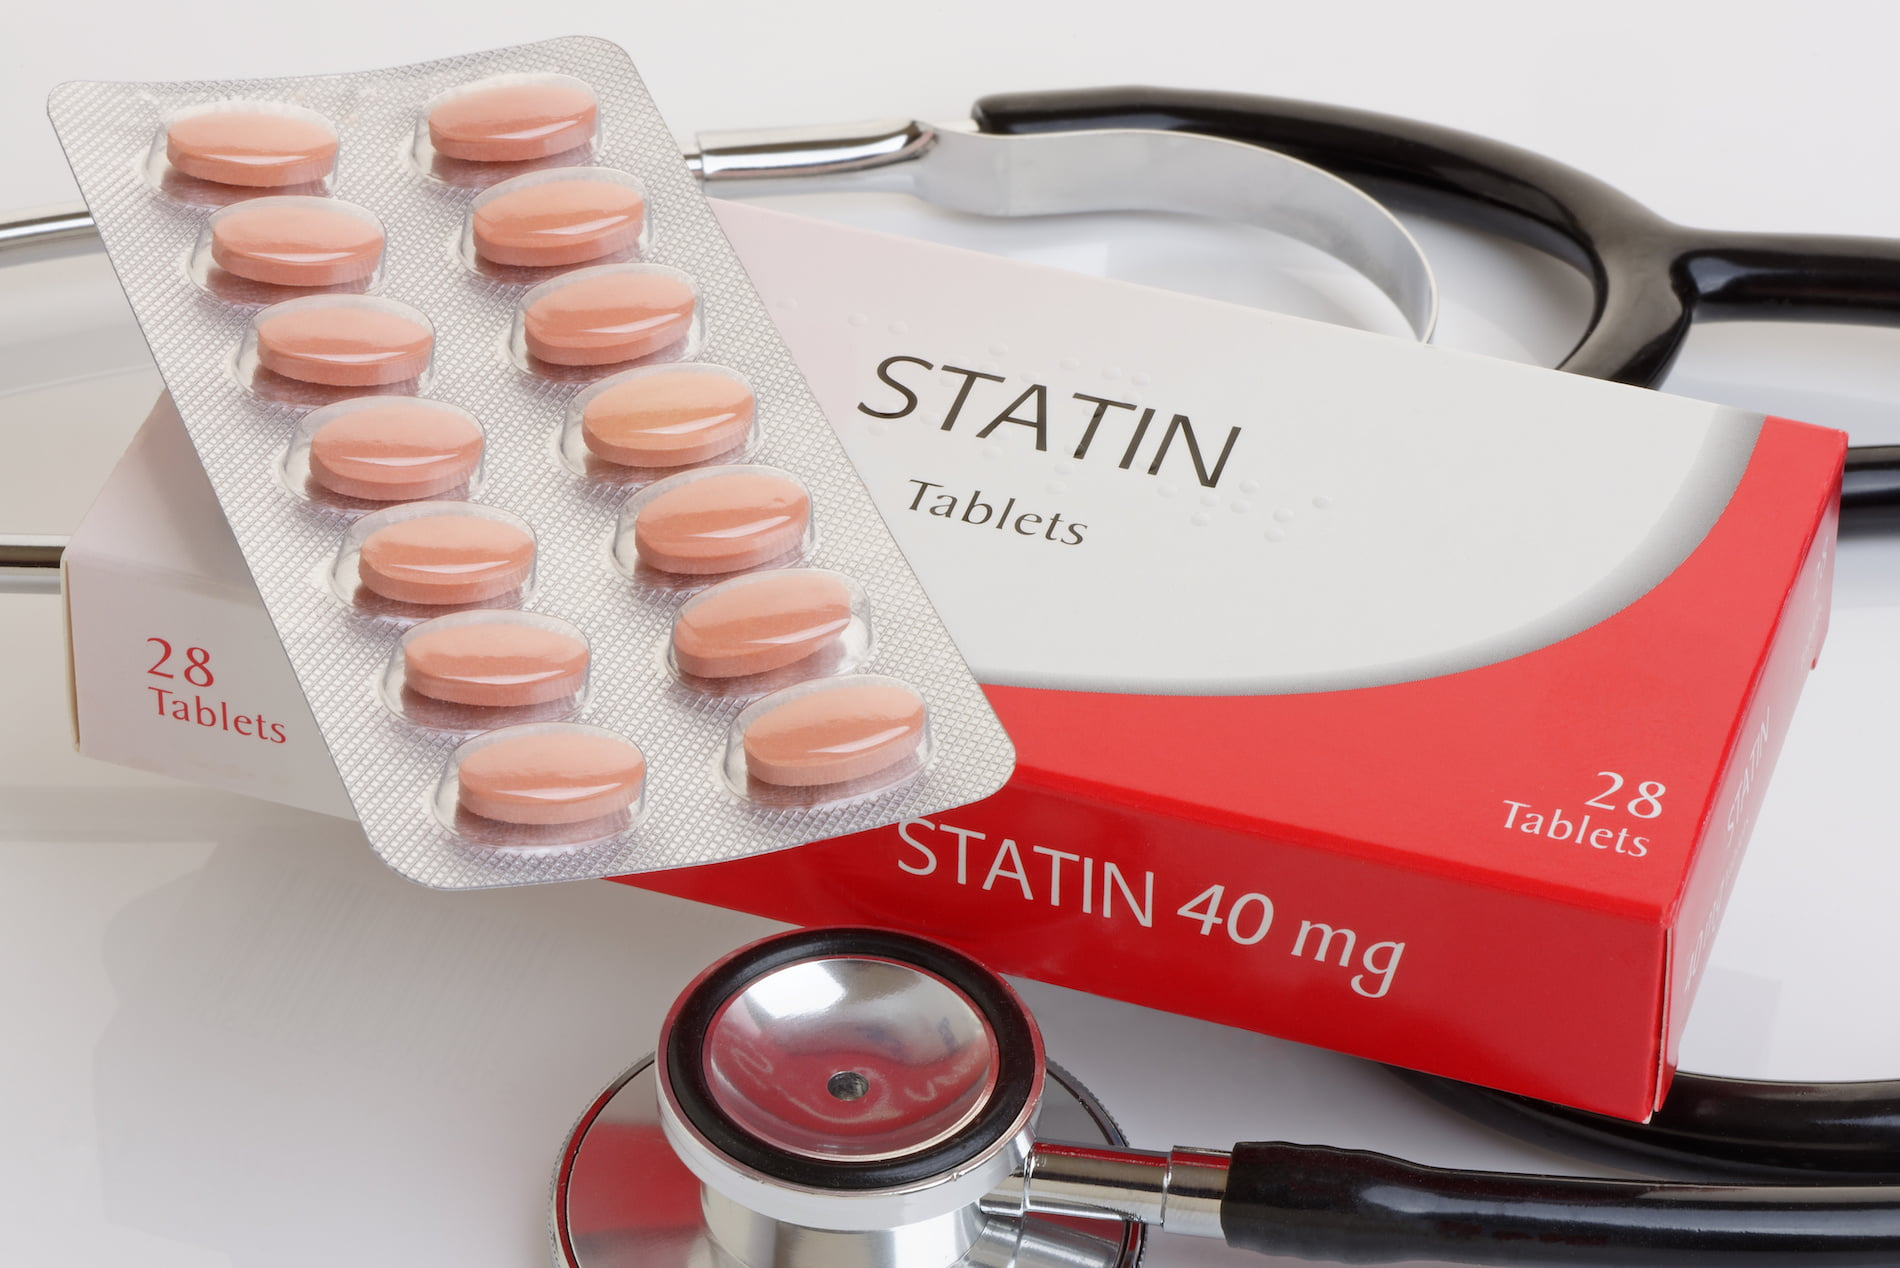 Statins Help the Heart, No Matter Your Age